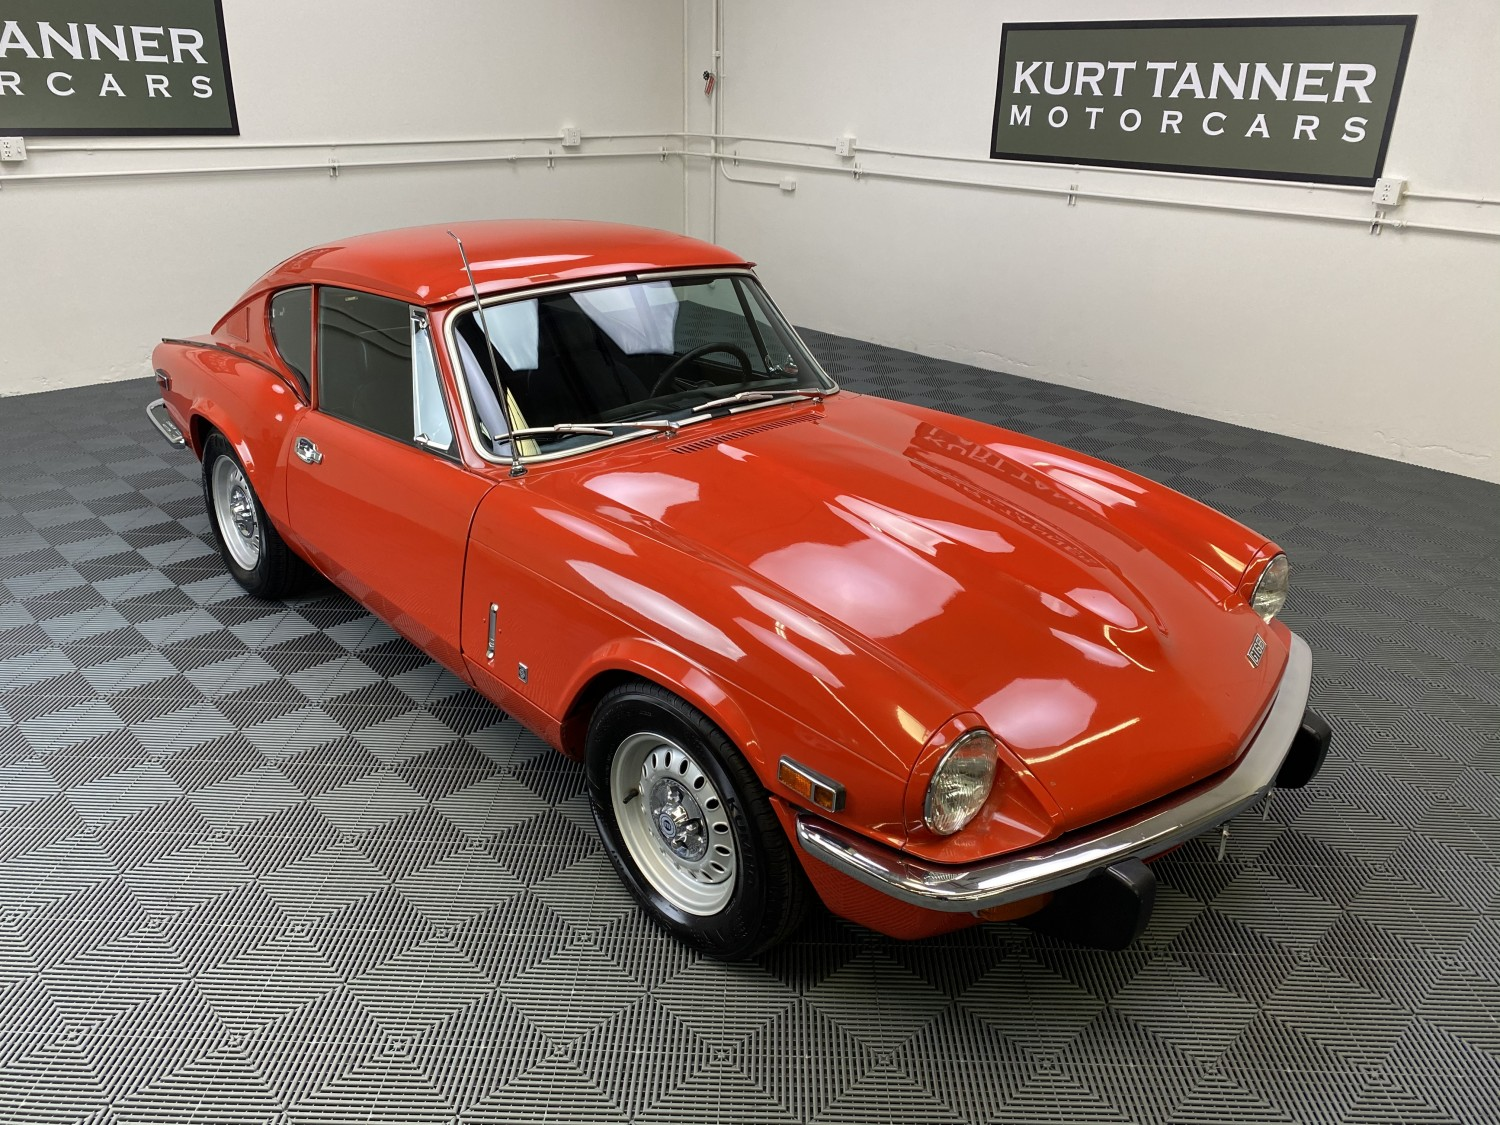 1973 TRIUMPH GT-6 SPORTS COUPE. 41,046 ORIGINAL MILES. FACTORY ORIGINAL PAINT. PIMENTO RED WITH BLACK TRIM. 4-SPEED, DISC WHEELS. MECHANICAL RECOMMISSIONING JUST COMPLETED. SUPERB ORIGINAL.